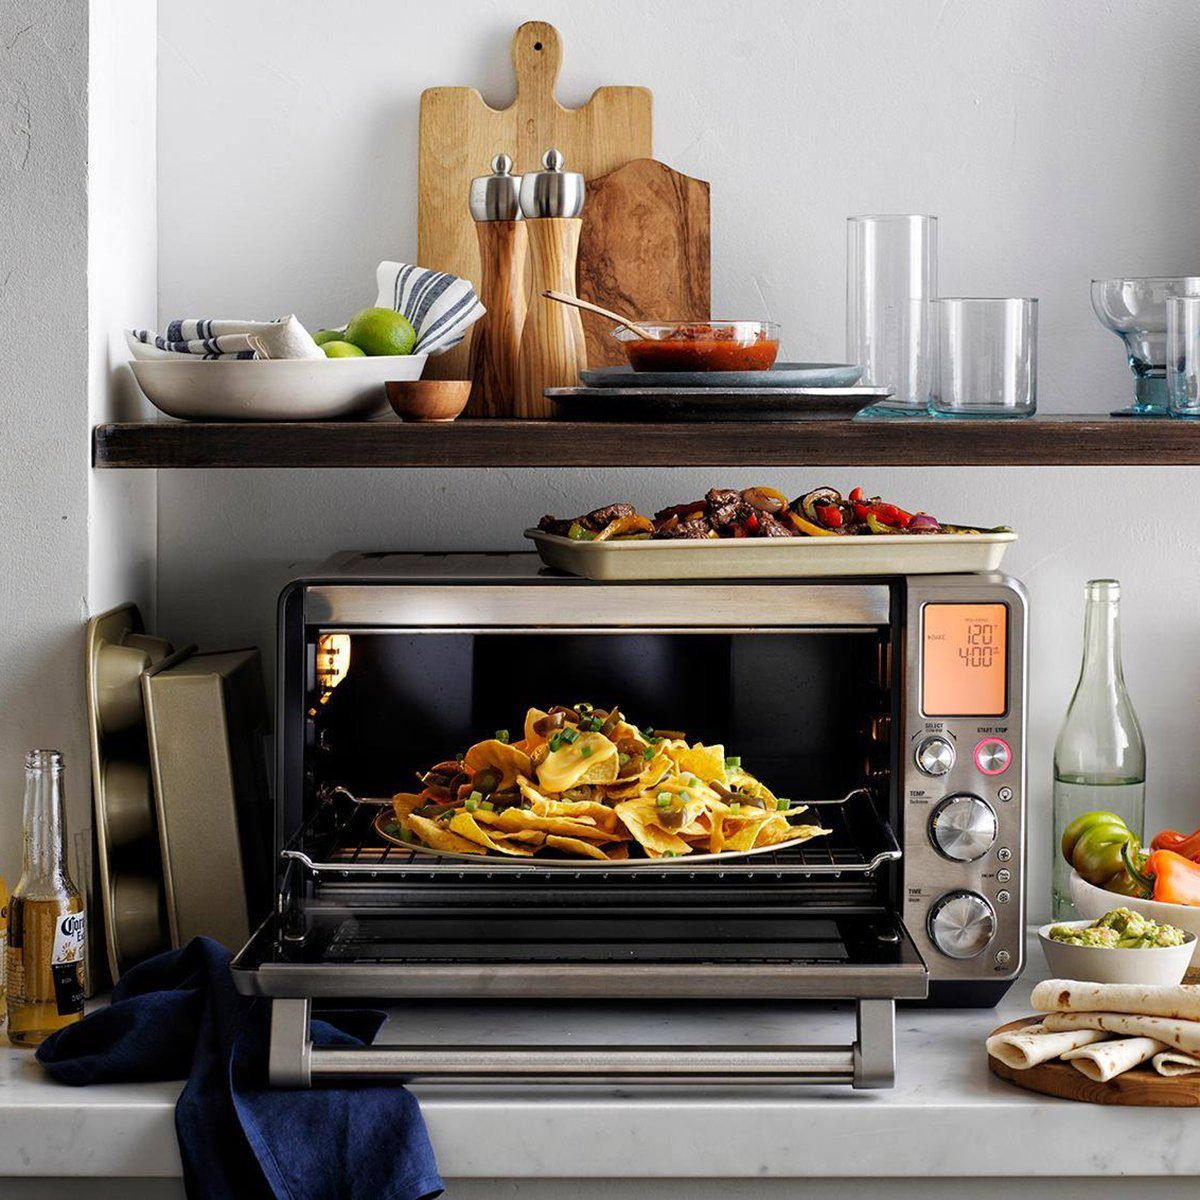 Williams Sonoma toaster oven with nachos and beer